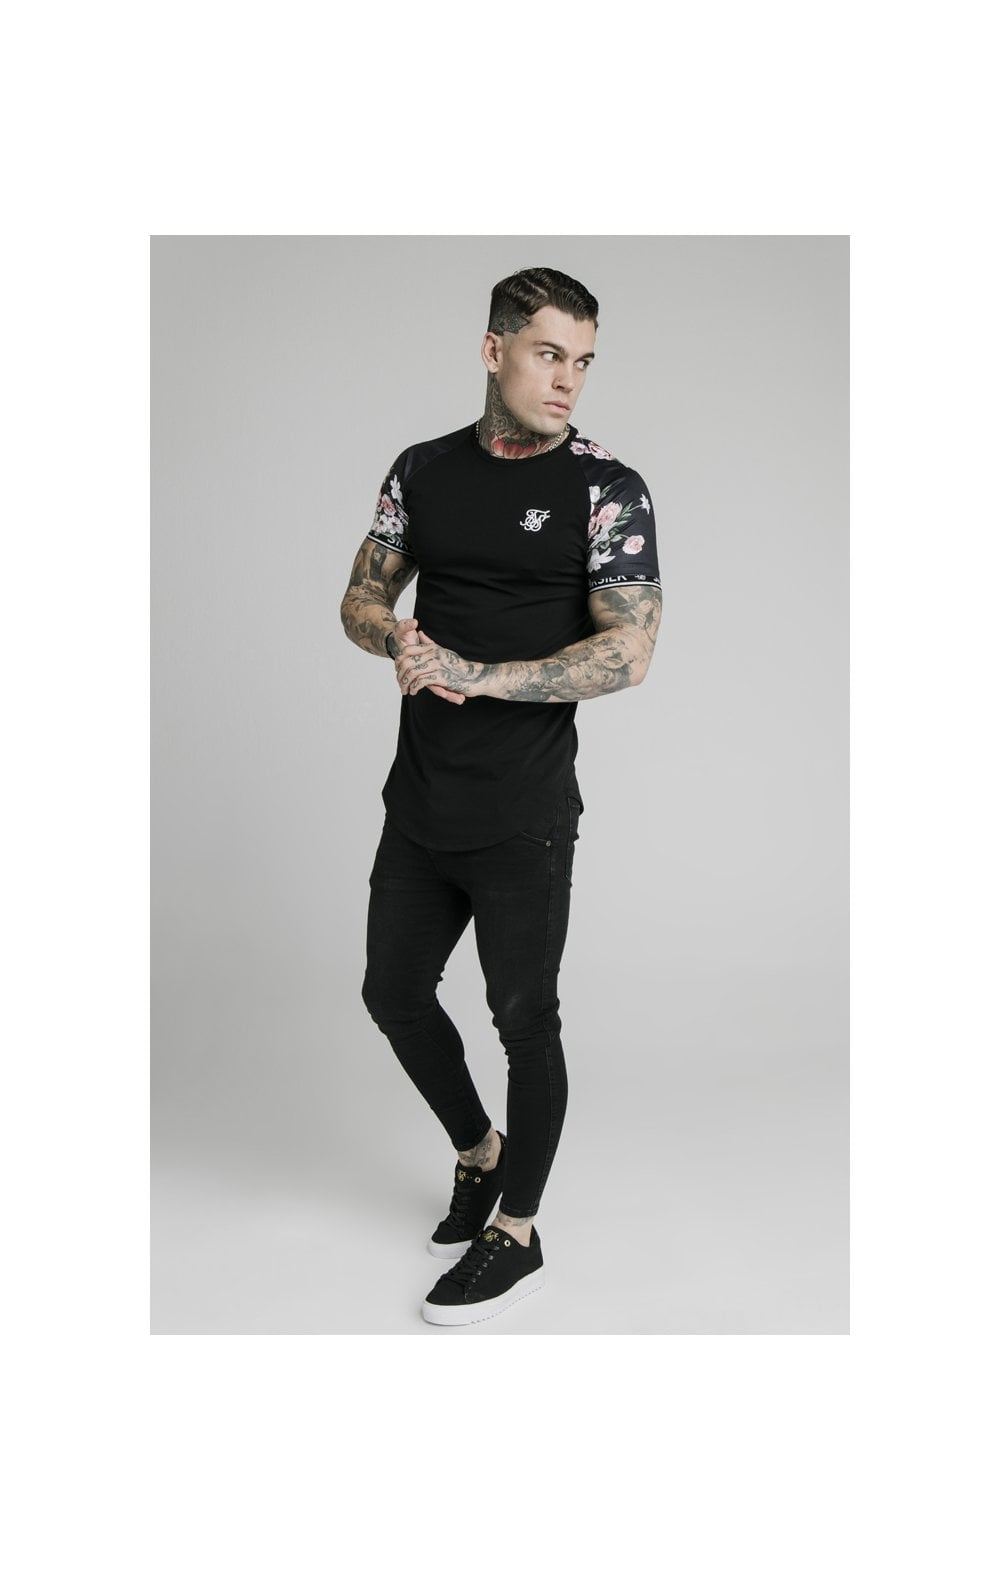 Load image into Gallery viewer, SikSilk S/S Prestige Floral Inset Tech Tee - Black (3)